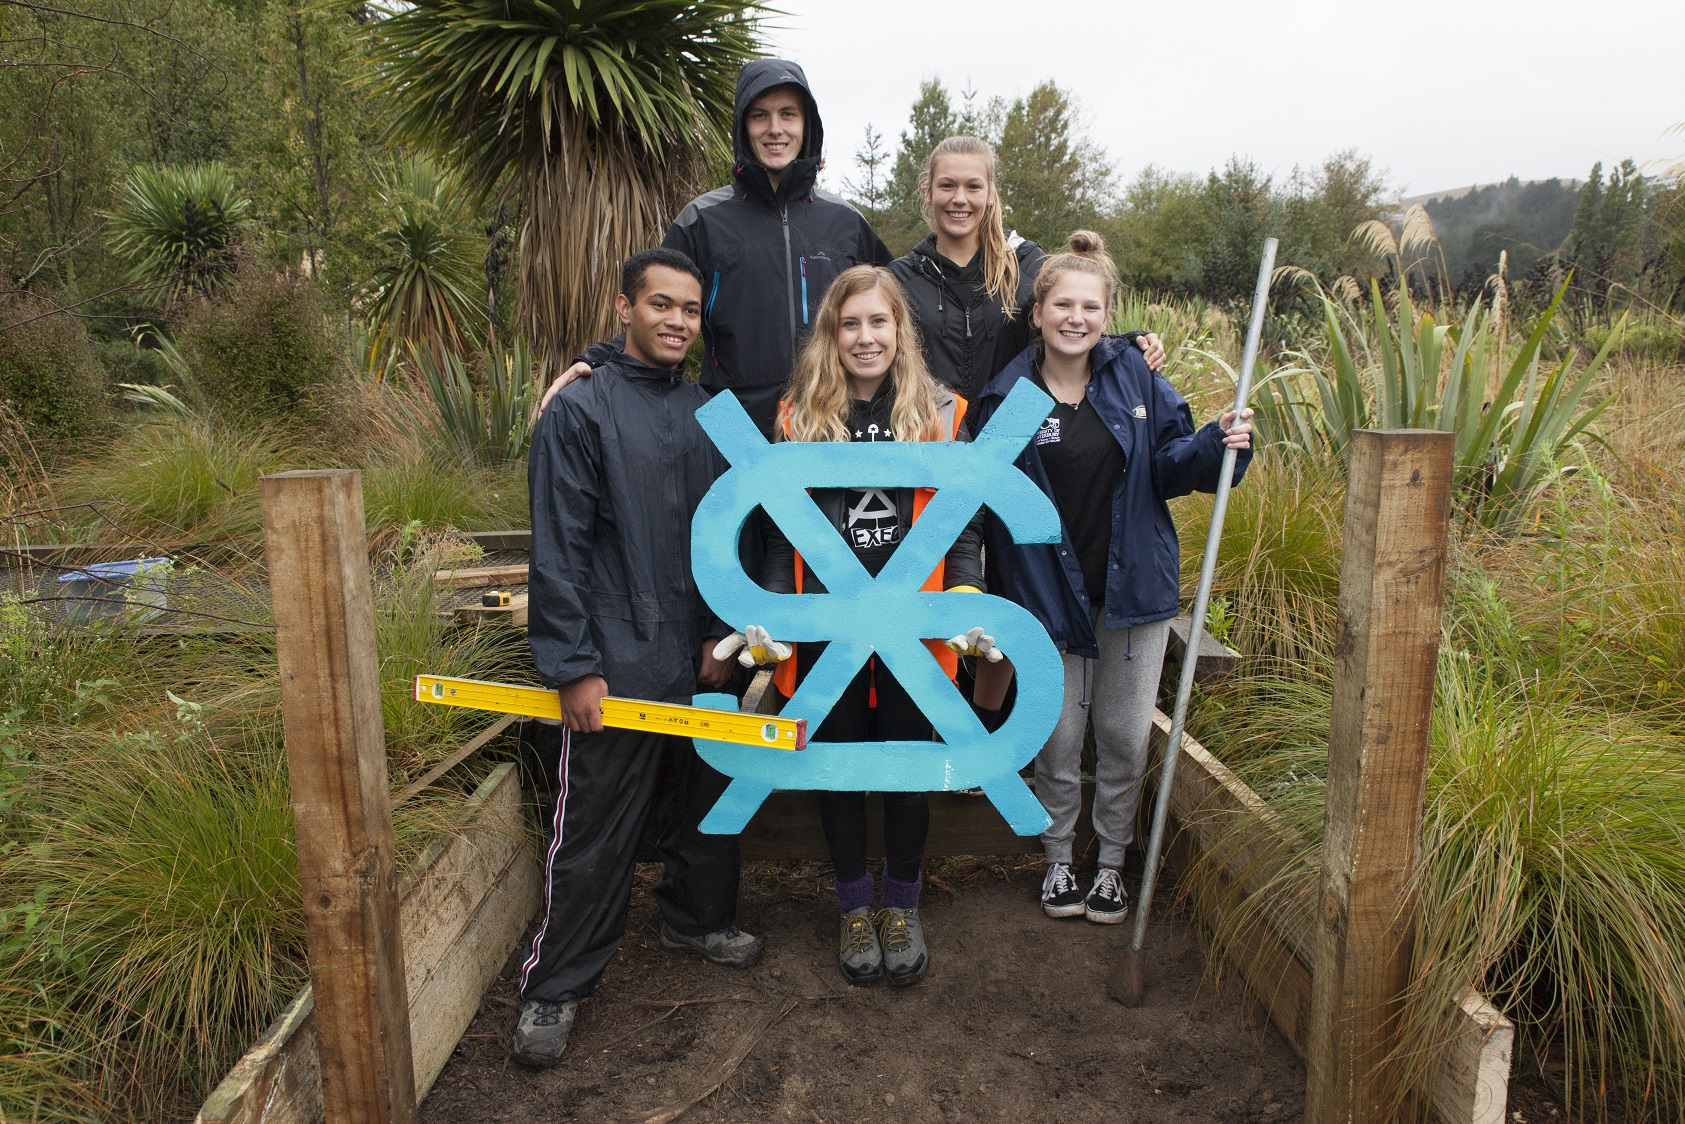 Student Volunteer Army (SVA) together with High School students from around Christchurch complete a project at Halswell Quarry Park.